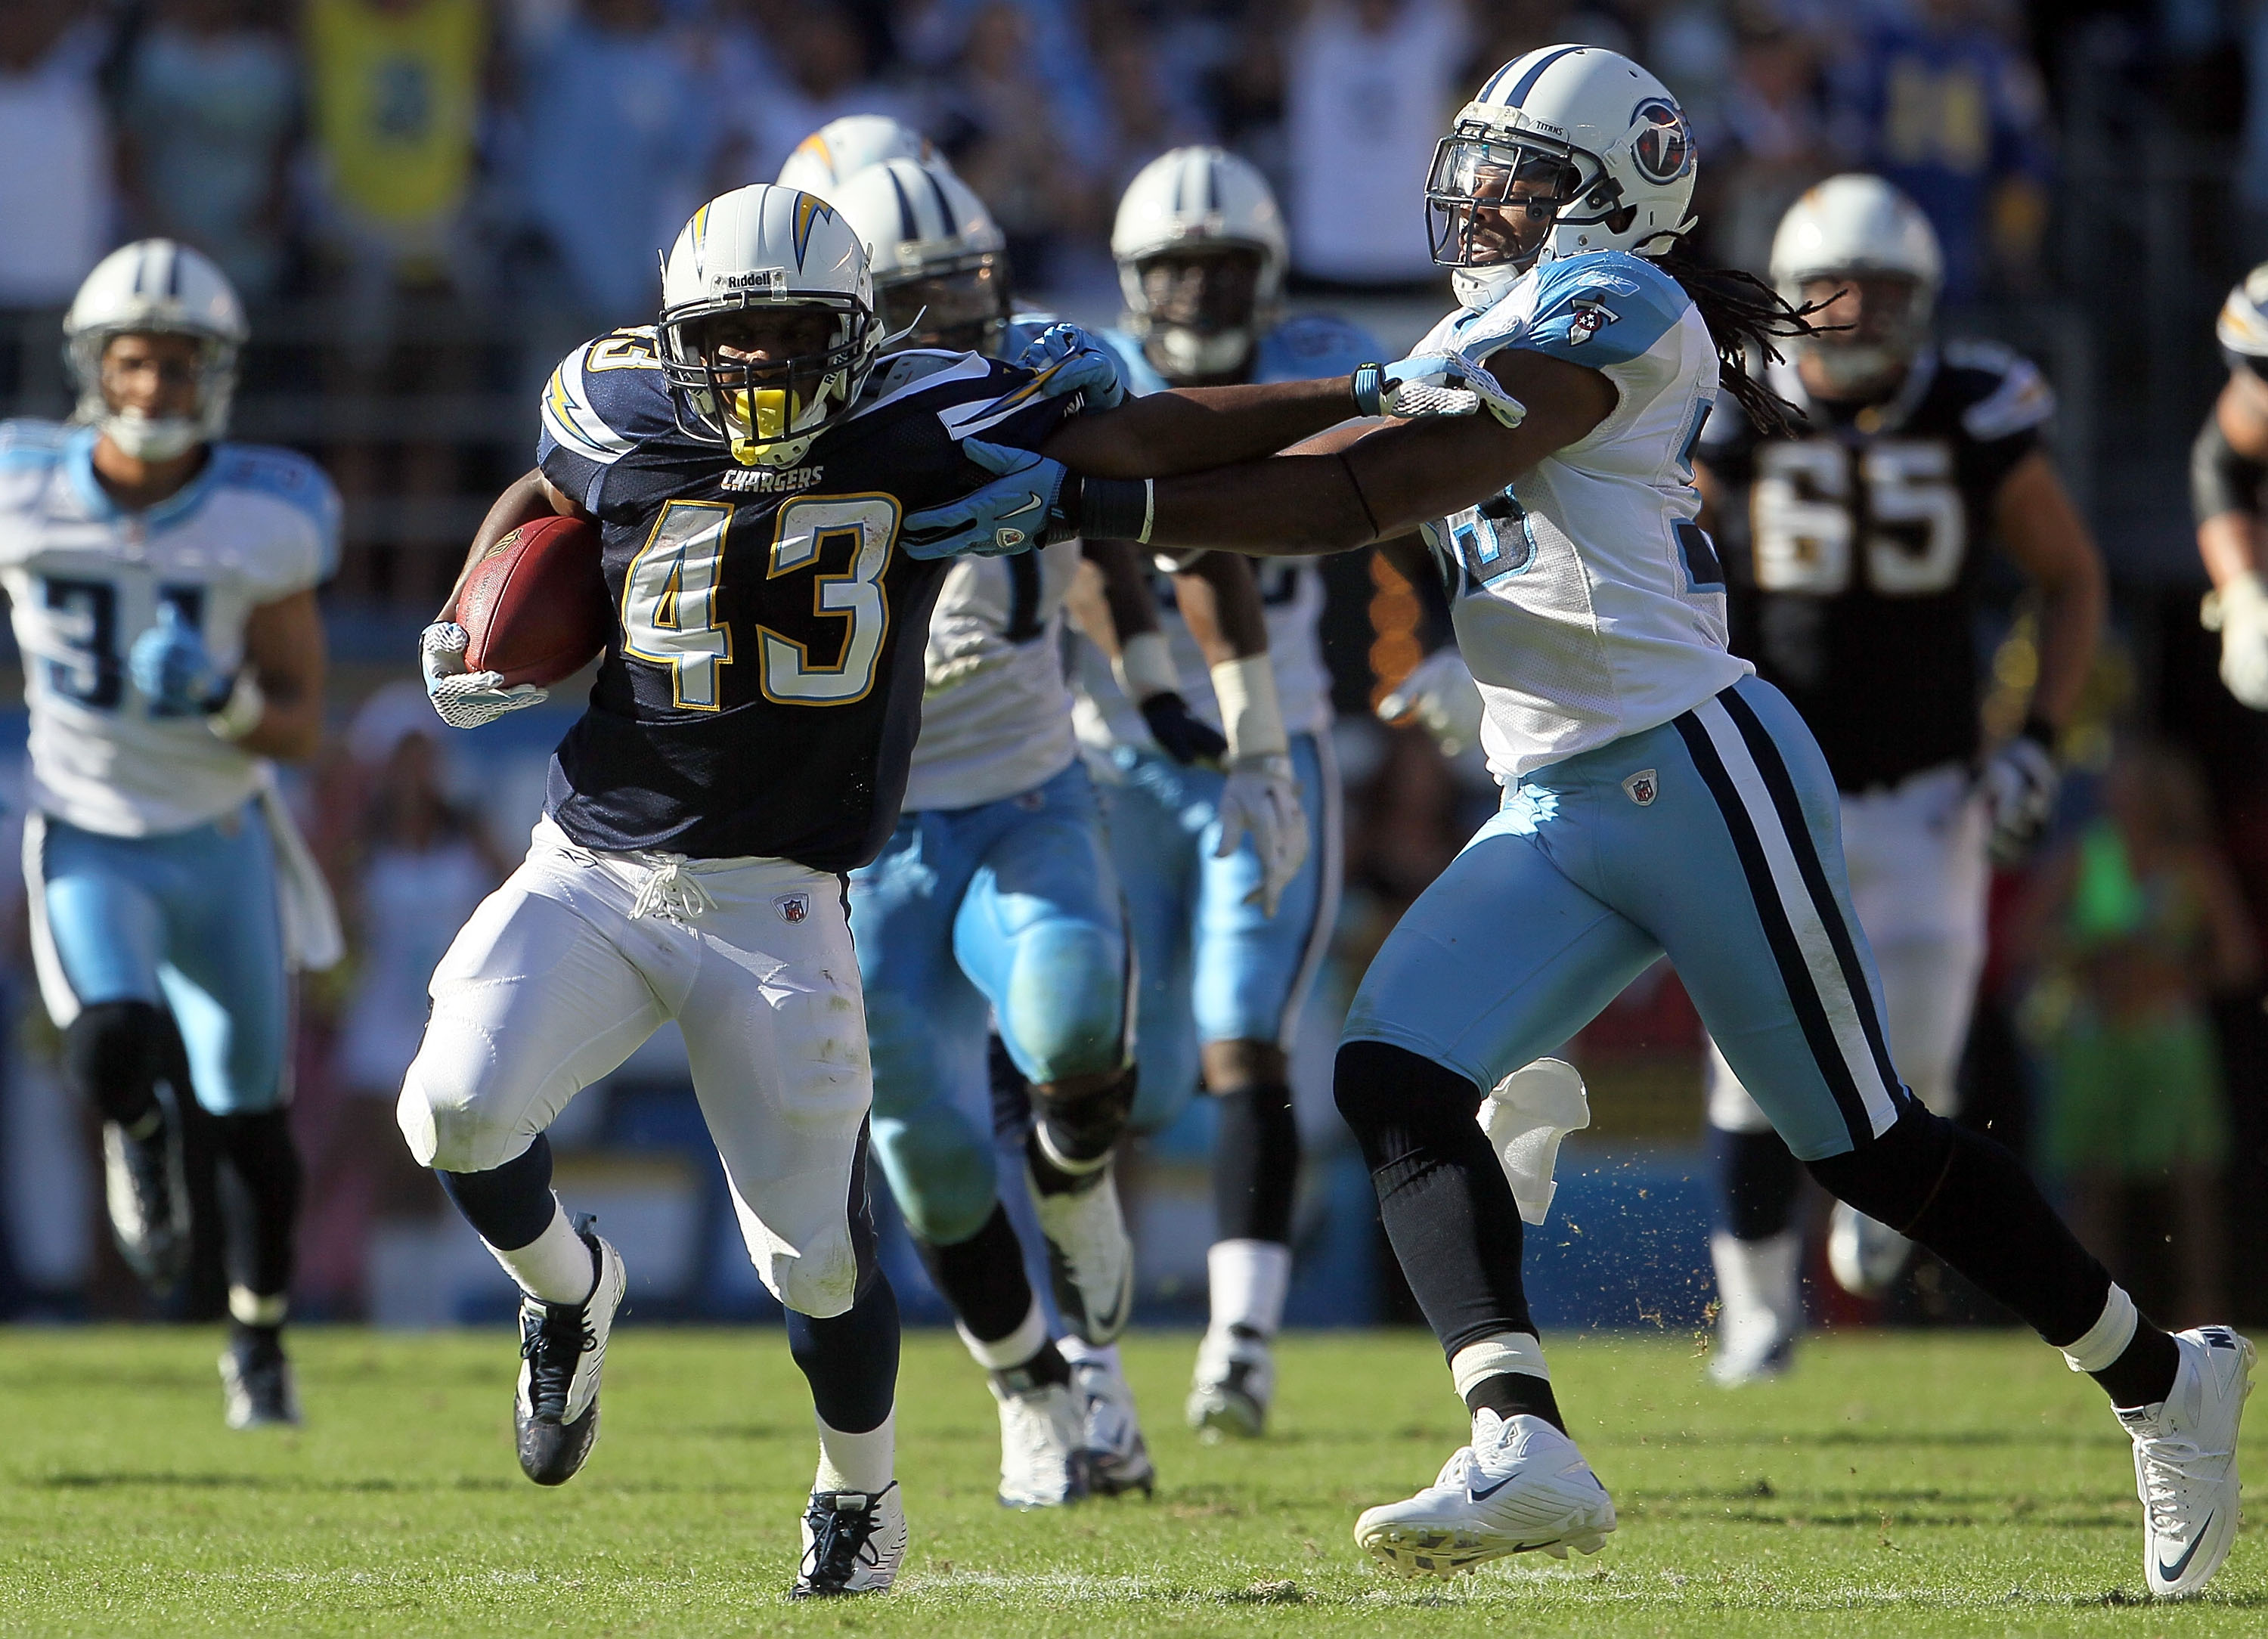 SAN DIEGO - OCTOBER 31:  Running back Darren Sproles #43 of the San Diego Chargers is pursued by Michael Griffin #33 of the Tennessee Titans in the game at Qualcomm Stadium on October 31, 2010 in San Diego, California. The Chargers defeated the Titans 33-